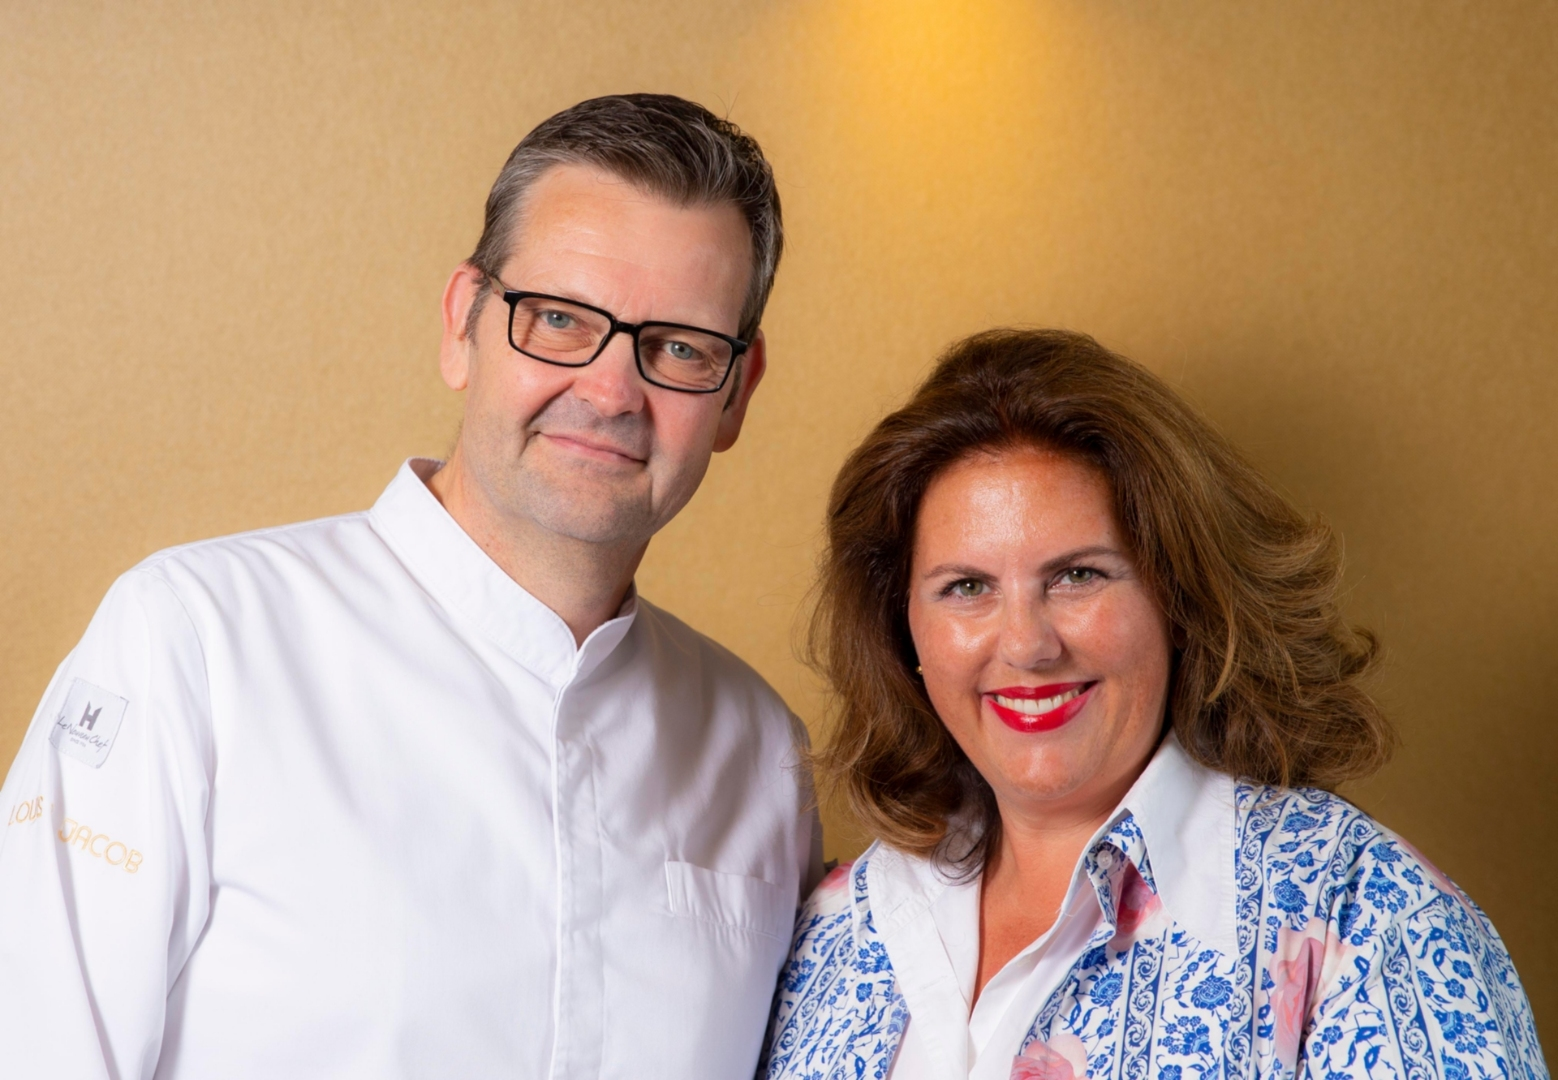 Sternekoch Thomas Martin und Vivian Hecker, Leiterin Marketing & Events des Hamburger Abendblattes. Fotocredit: © Roland Magunia, Hamburger Abendblatt, 2018